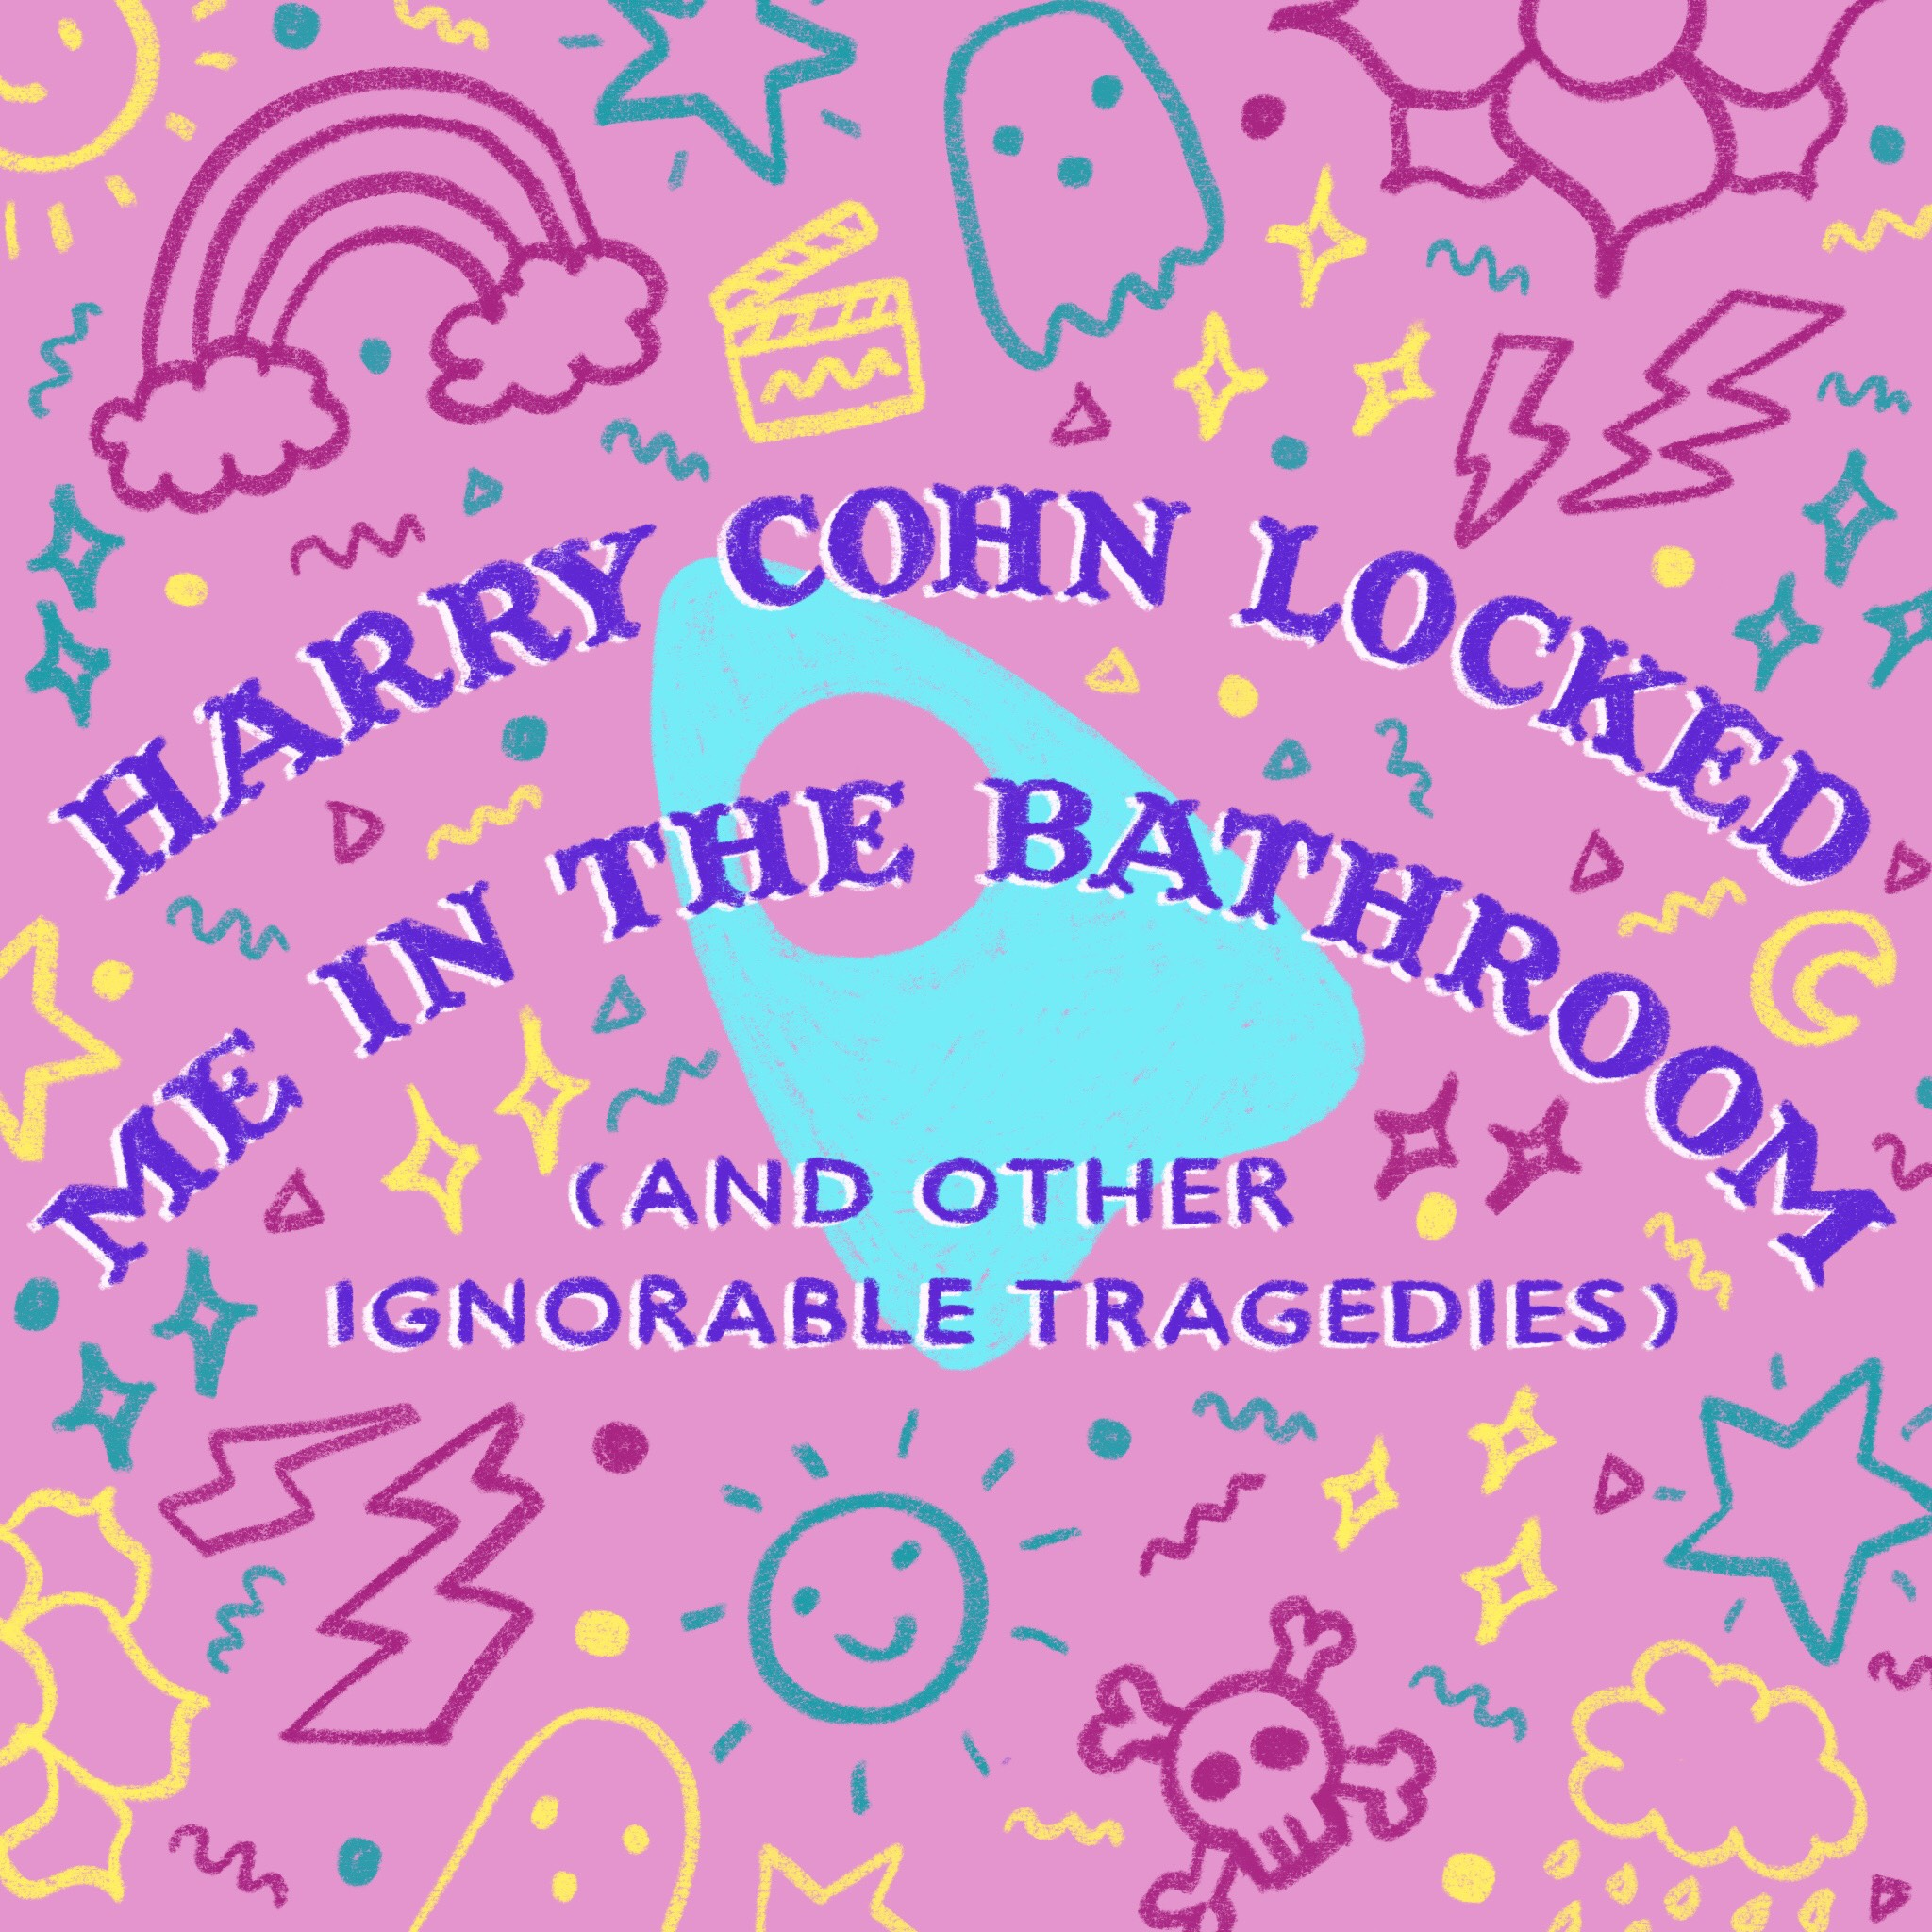 "Harry Cohn Locked Me in the Bathroom (And Other Ignorable Tragedies) - full-length4 f / 3 m16-year-olds Samantha, Riley, and Janelle are determined to stay best friends and ""make it"" in the entertainment industry. But when they accidentally summon the ghost of the infamous Hollywood movie mogul, Harry Cohn, with a ouija board at one of their Saturday night sleepovers, the girls are forced to confront some of the harsh realities of coming of age as a young woman in Hollywood."